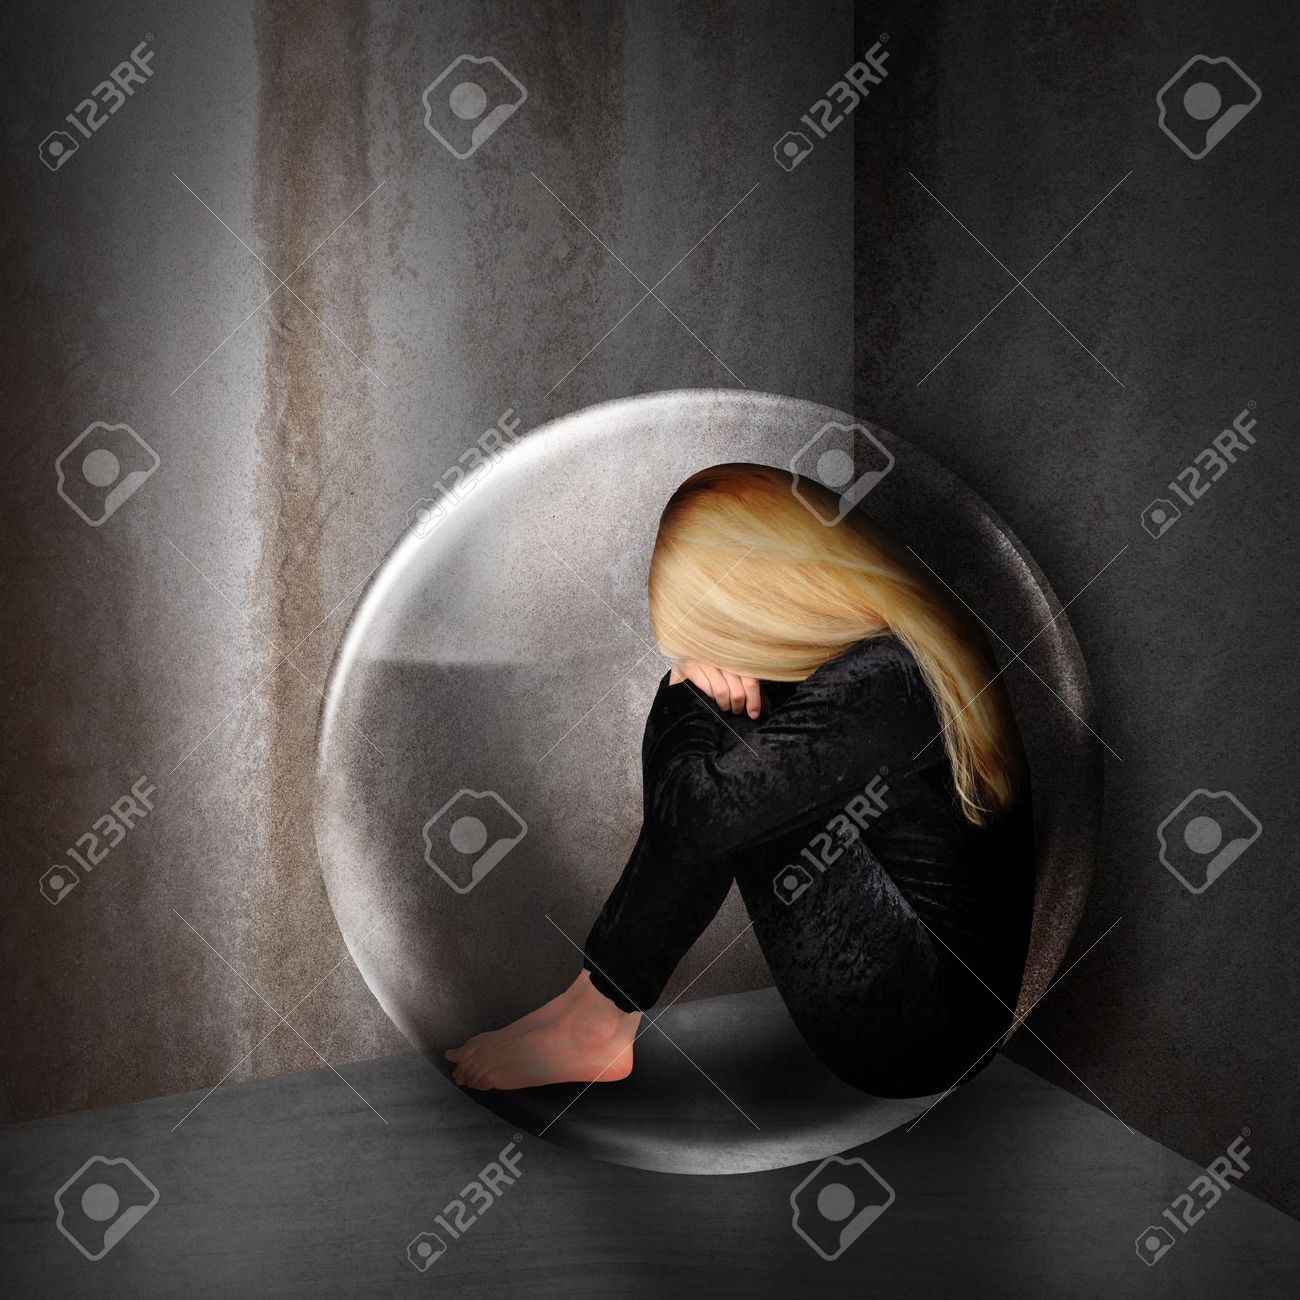 A young woman is depressed and sad in a bubble in a dark room  The girl has her head down and curled up in a corner Stock Photo - 17352554